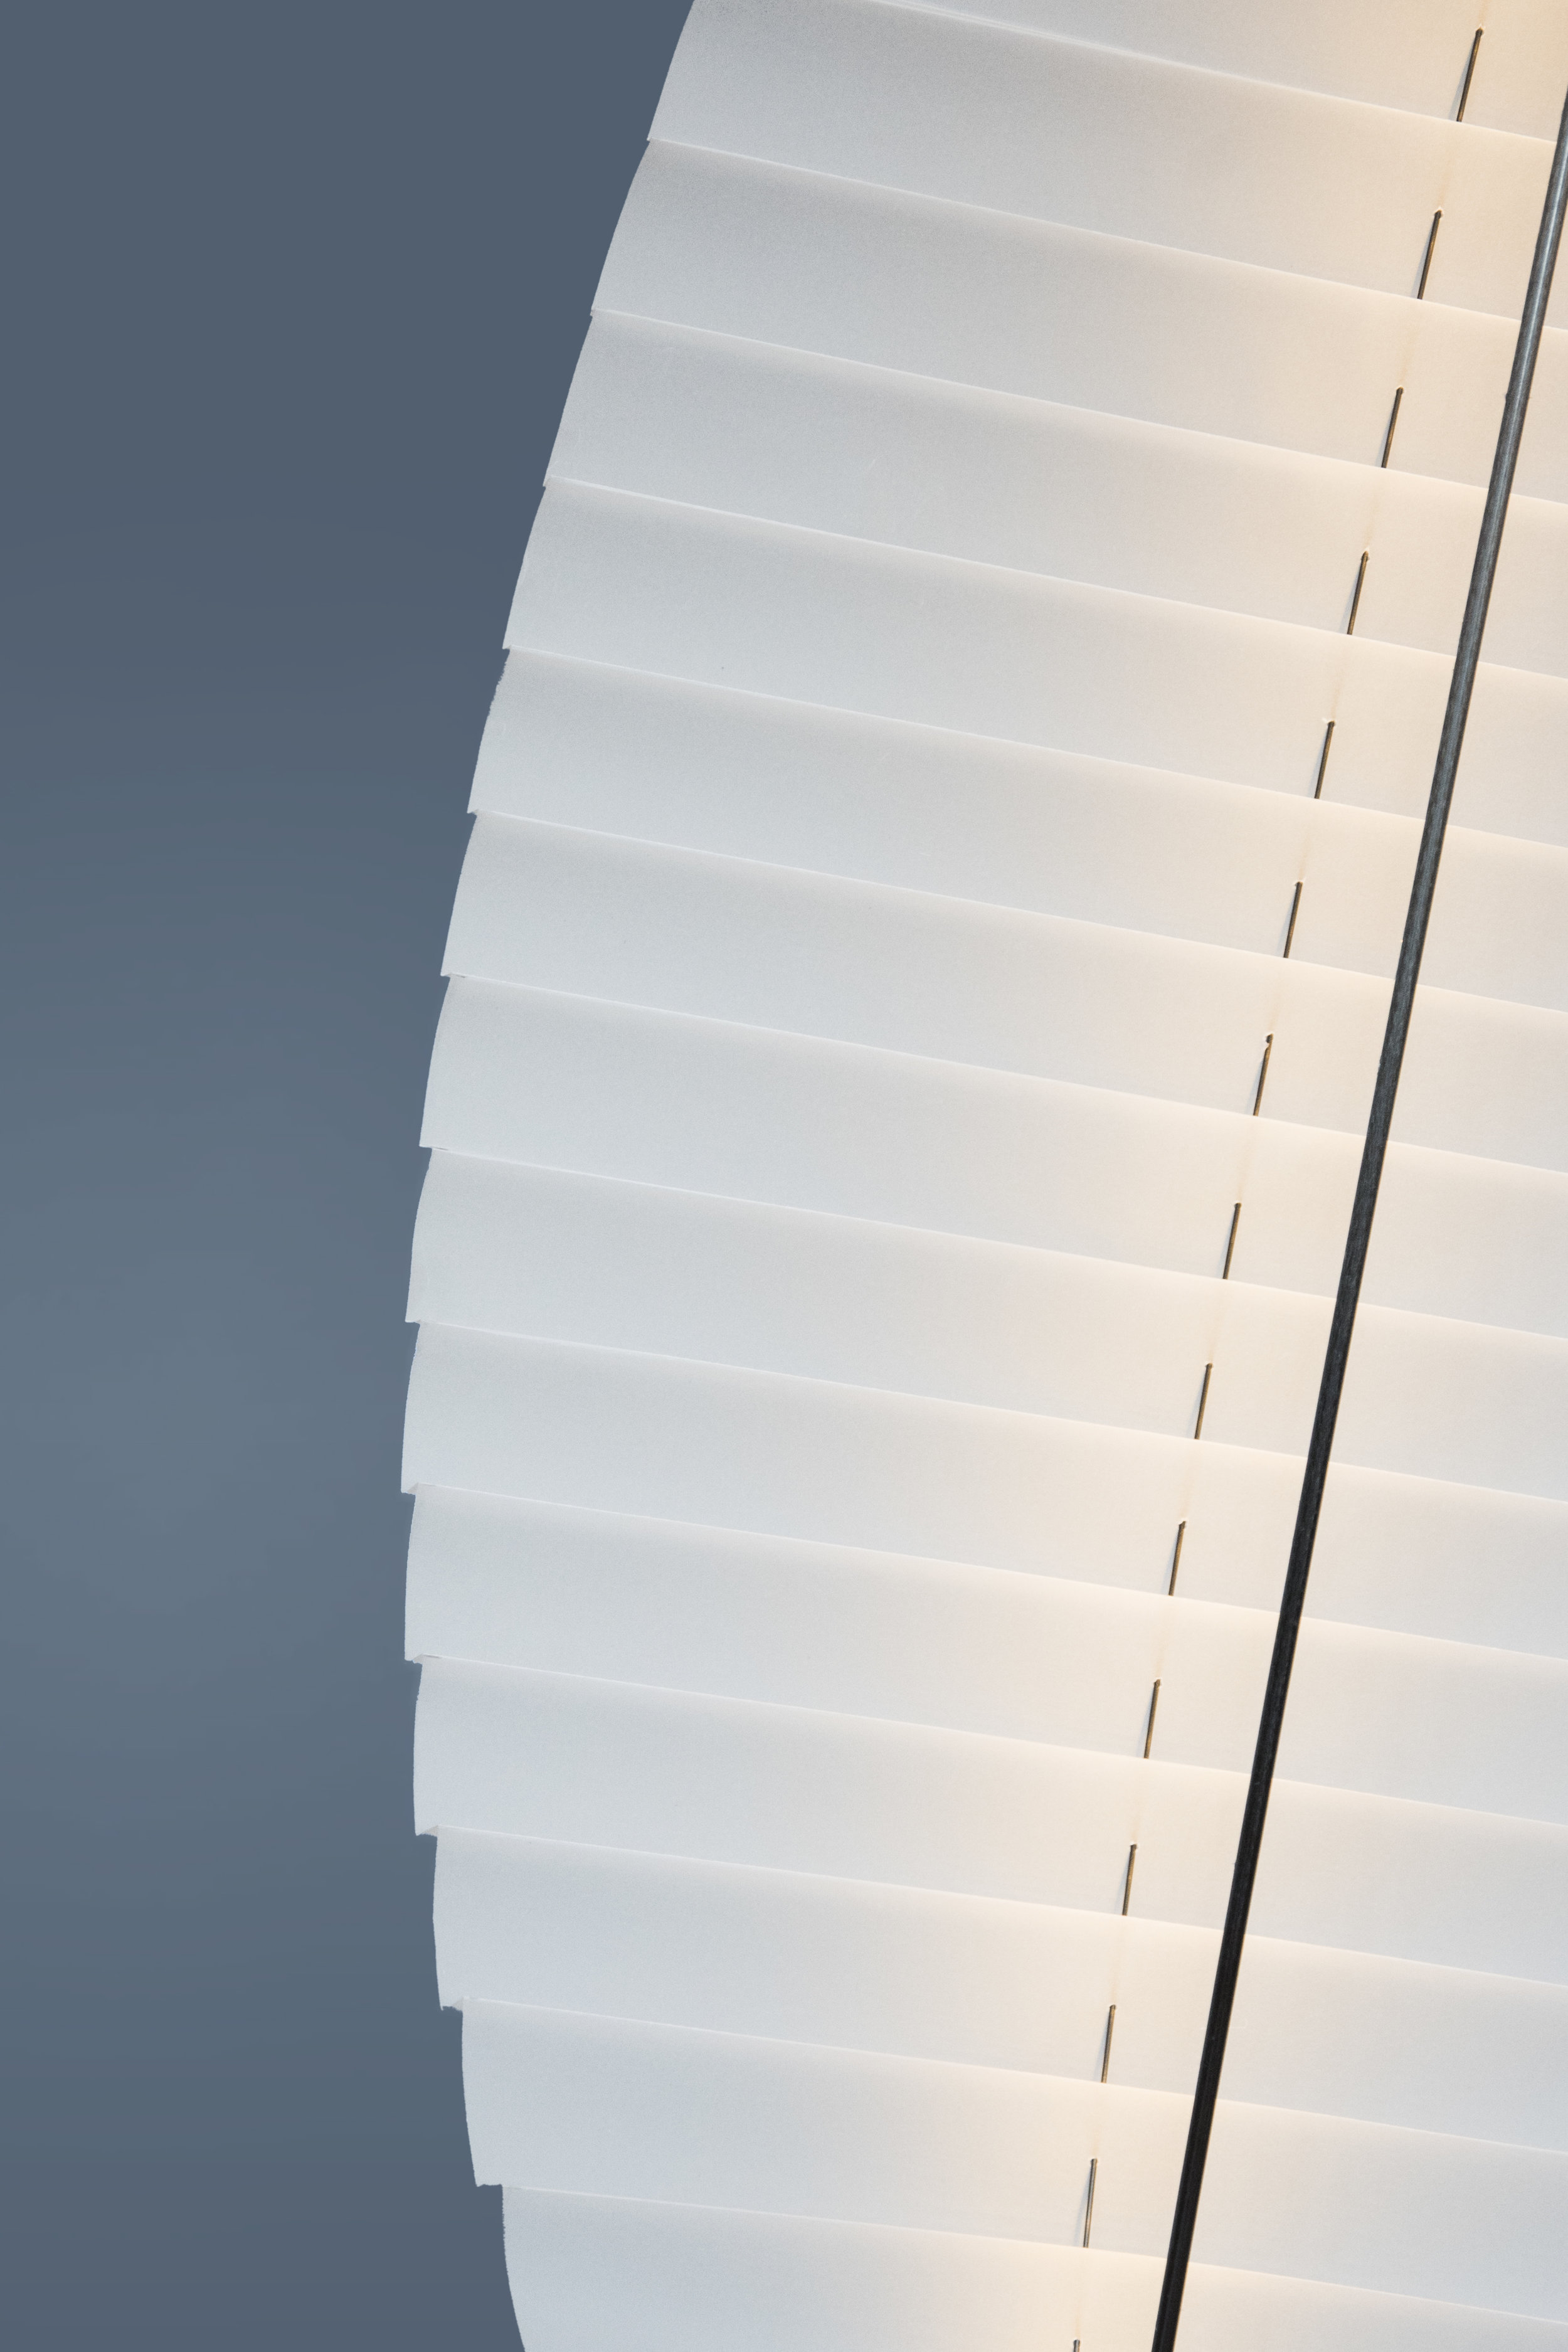 Sway Light Ellips - detail back light on - David Derksen Design.jpg